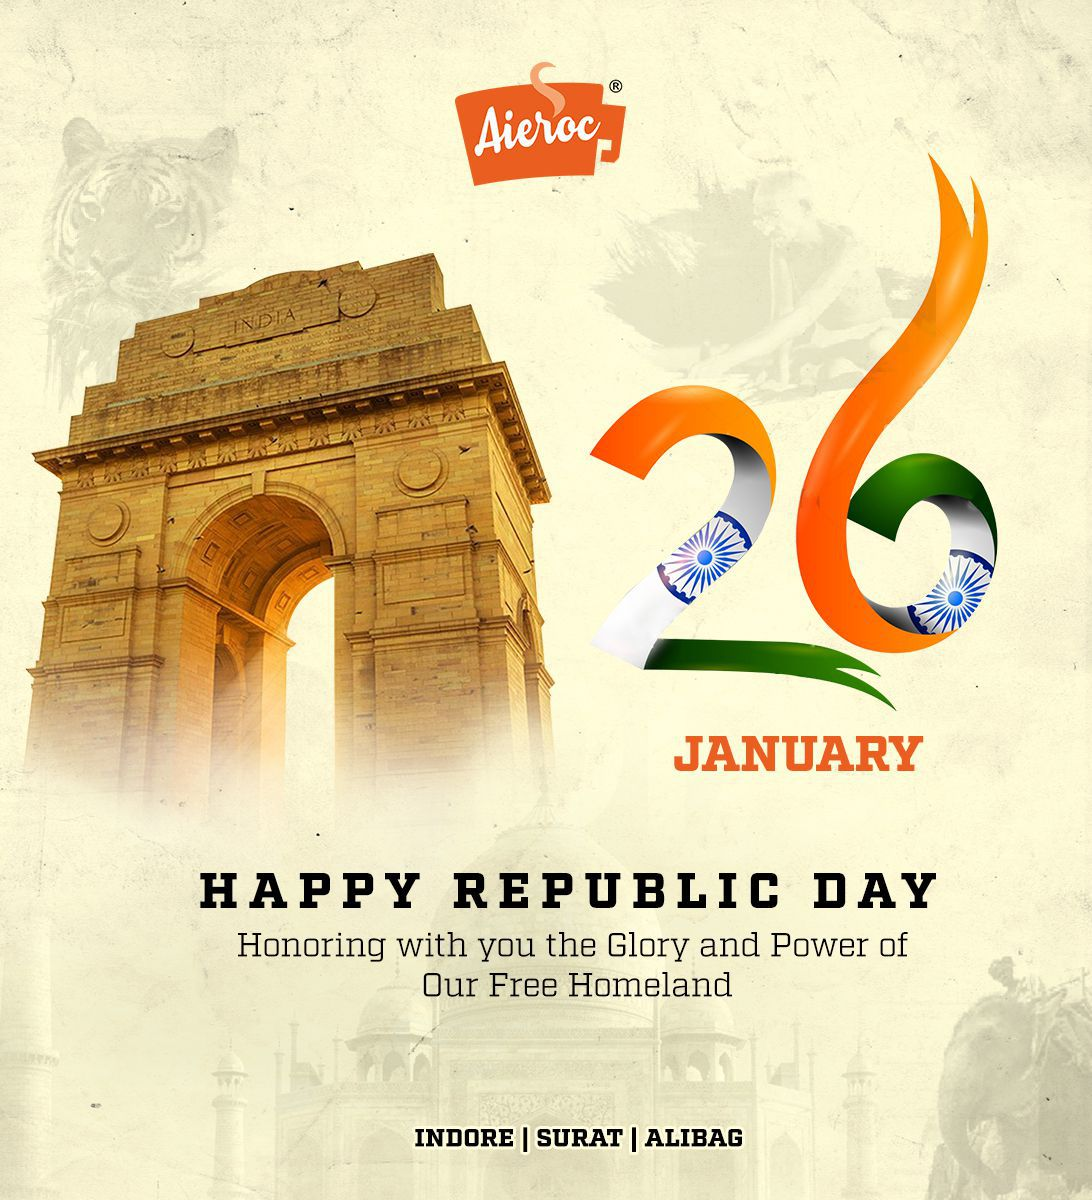 Republic Day Aieroc